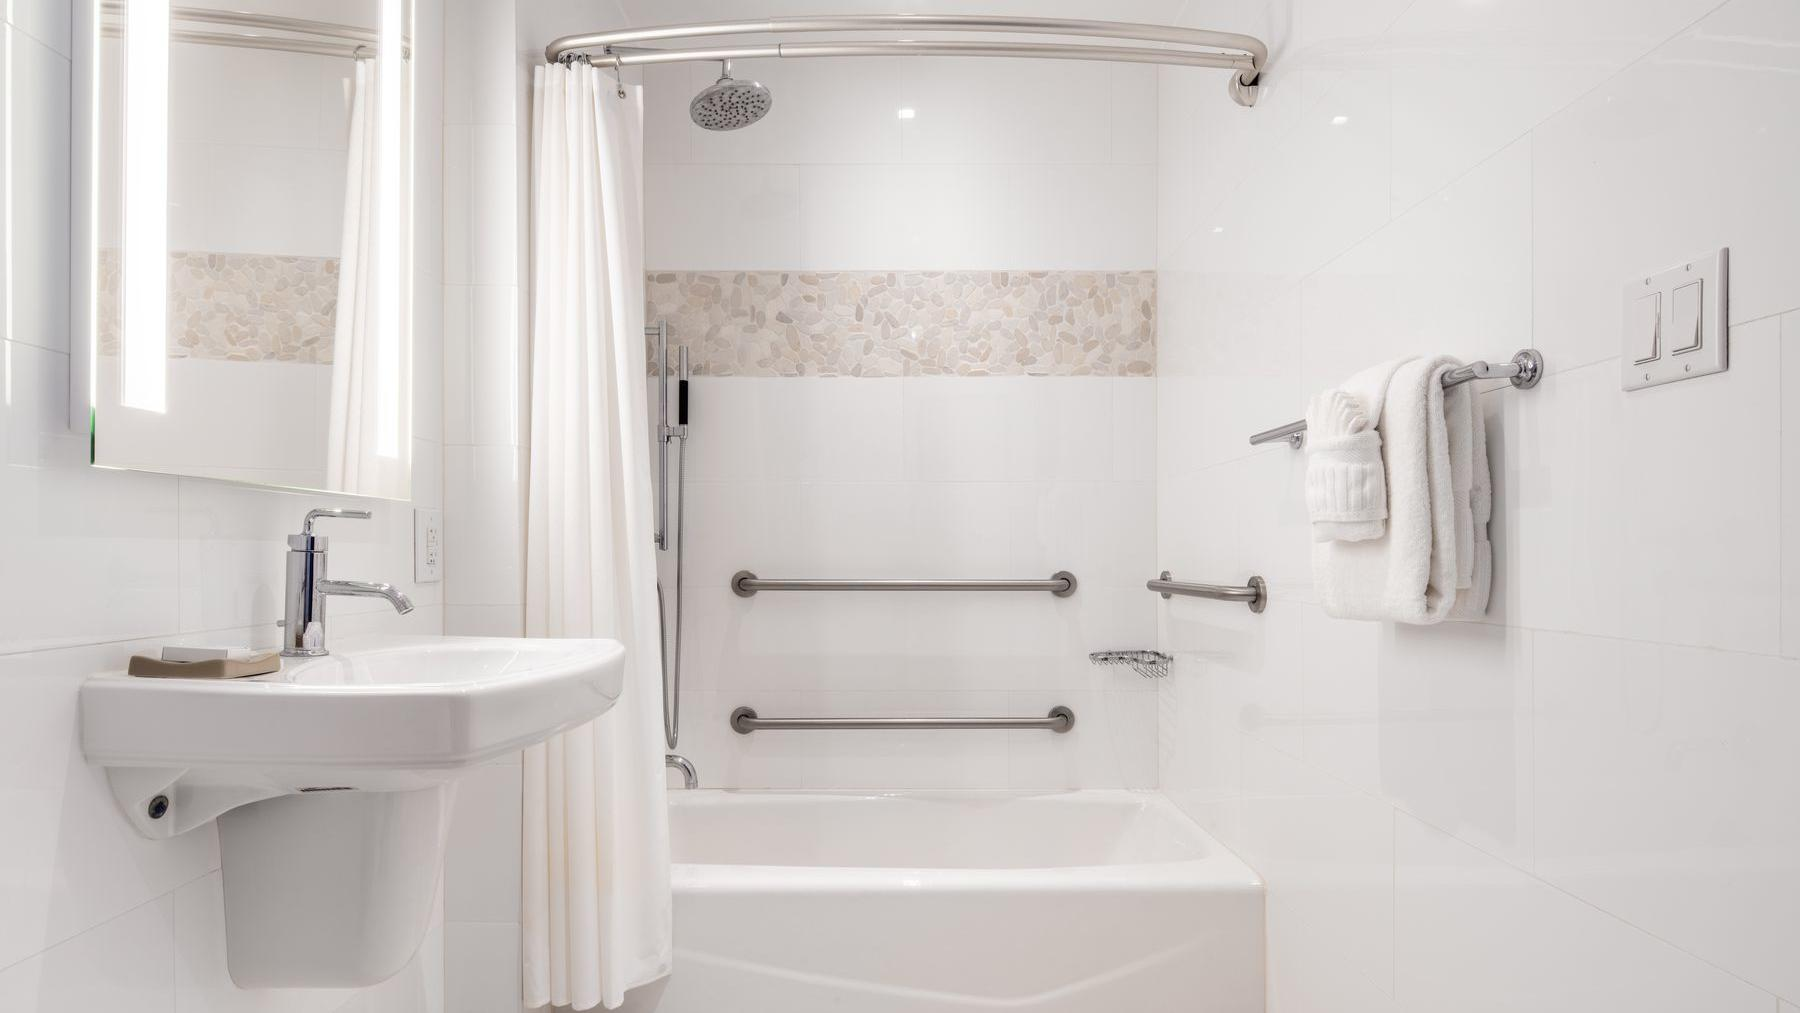 accessible bathroom with sink and shower tub